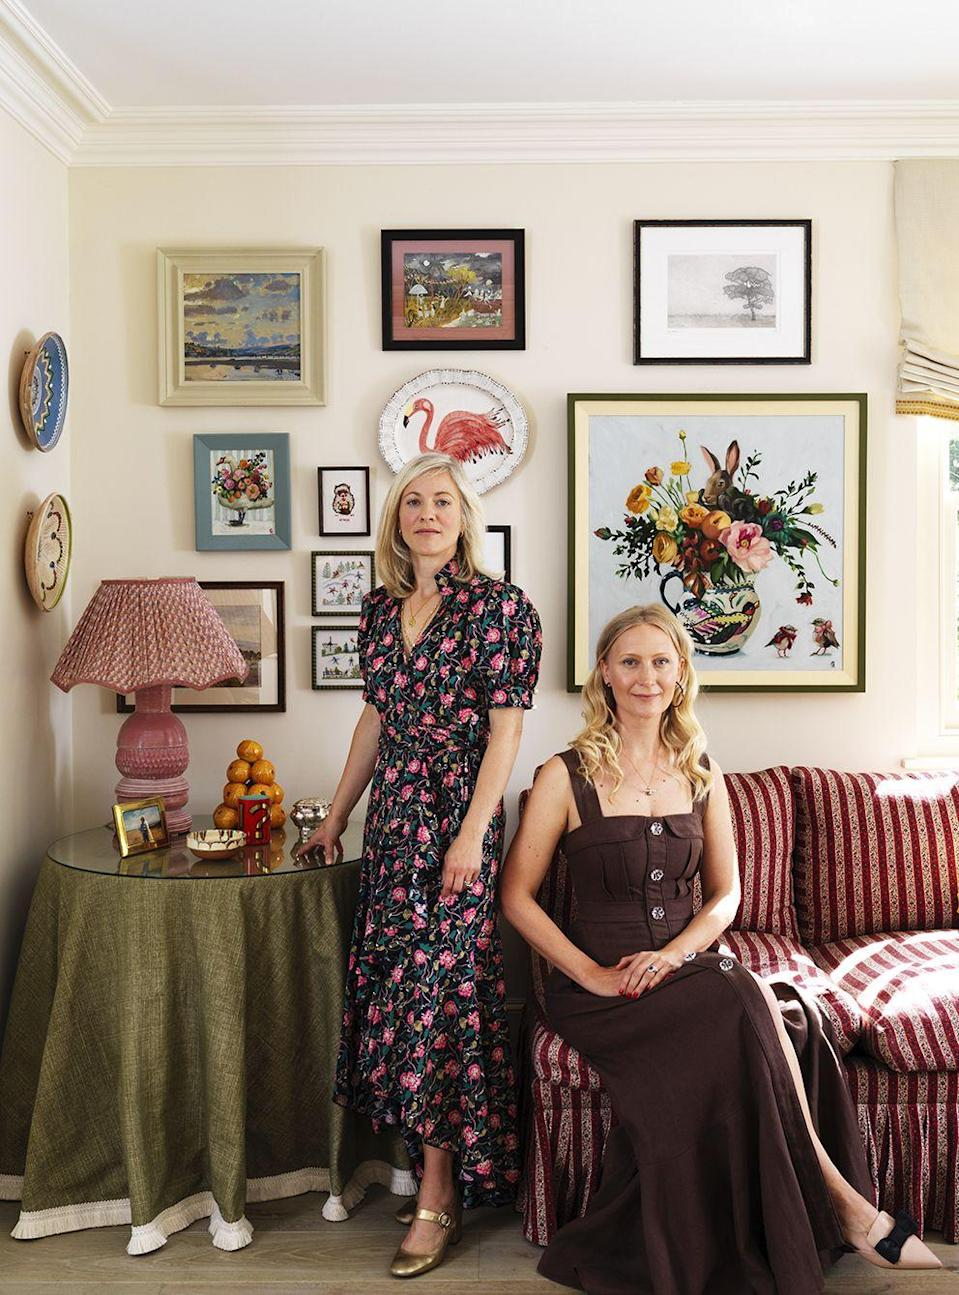 "<p>""I live in a leafy part of southwest London with my husband and three daughters and have remained here throughout the pandemic,"" says Nicole Salvesen, one part of the design duo <a href=""https://www.salvesengraham.com"" rel=""nofollow noopener"" target=""_blank"" data-ylk=""slk:Salvesen & Graham"" class=""link rapid-noclick-resp"">Salvesen & Graham</a>. ""London can be frenetic and pressured at times, and we have all cherished this time as a family where life has slowed down, and being surrounded by our kind and generous neighbours has made us realize what a wonderful community we live in. We also took the opportunity to get the puppy we had been discussing for months and are delighted we did. She gives us even more opportunity to be together as a family, running and walking outside of the working week. The joy she brings us all, especially the children, even makes some of the tougher days bearable, especially as we move in and out of varying restrictions.""<br></p><p>""Having just finished renovating our period farmhouse at the start of the pandemic, it was an unexpected pleasure to be able to spend more time at home with my family and to really have the opportunity to consider all the finishing touches needed to turn the property from a house to a home! My husband and I normally spend half the week in London, so to spend each week in our own home was bliss, although I became absolutely addicted to online antique shopping,"" says Mary Graham. ""I was so grateful for the chance to slow down and enjoy making a home for my family. As interior designers, we rarely get the chance to give as much time to our own homes as to those of our clients, so that has been something I've appreciated beyond measure this year.""</p>"